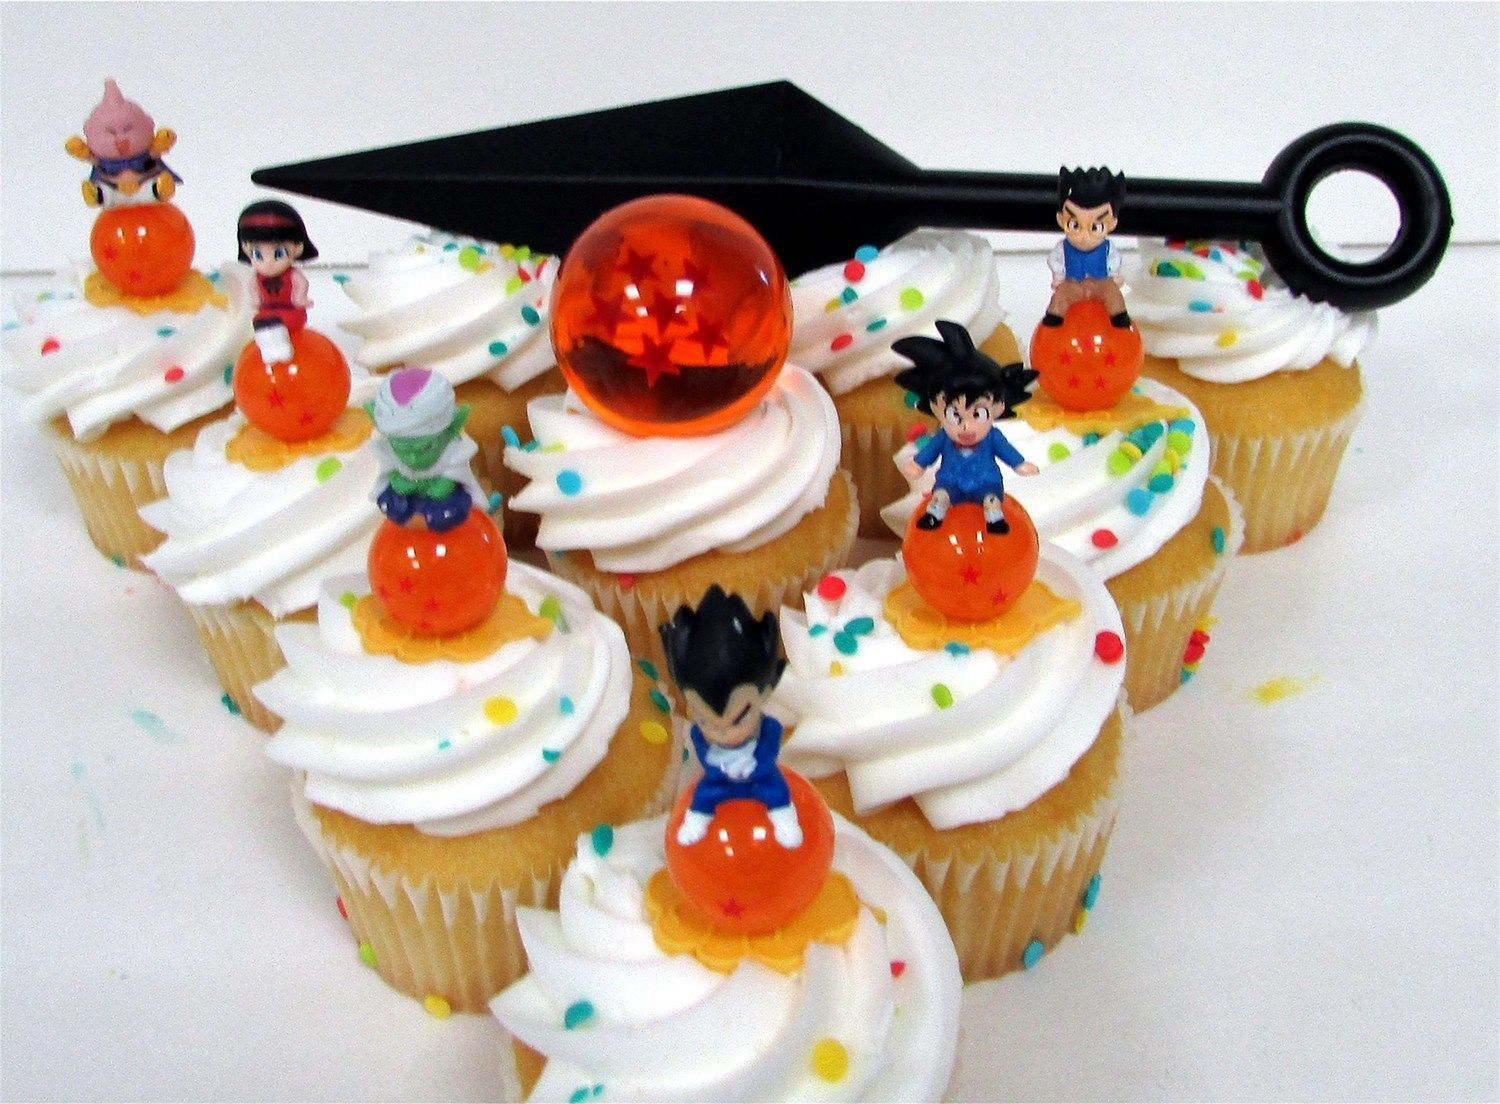 Dragon Ball Z 8 Piece Cupcake Topper Set Featuring 6 Random Dragon